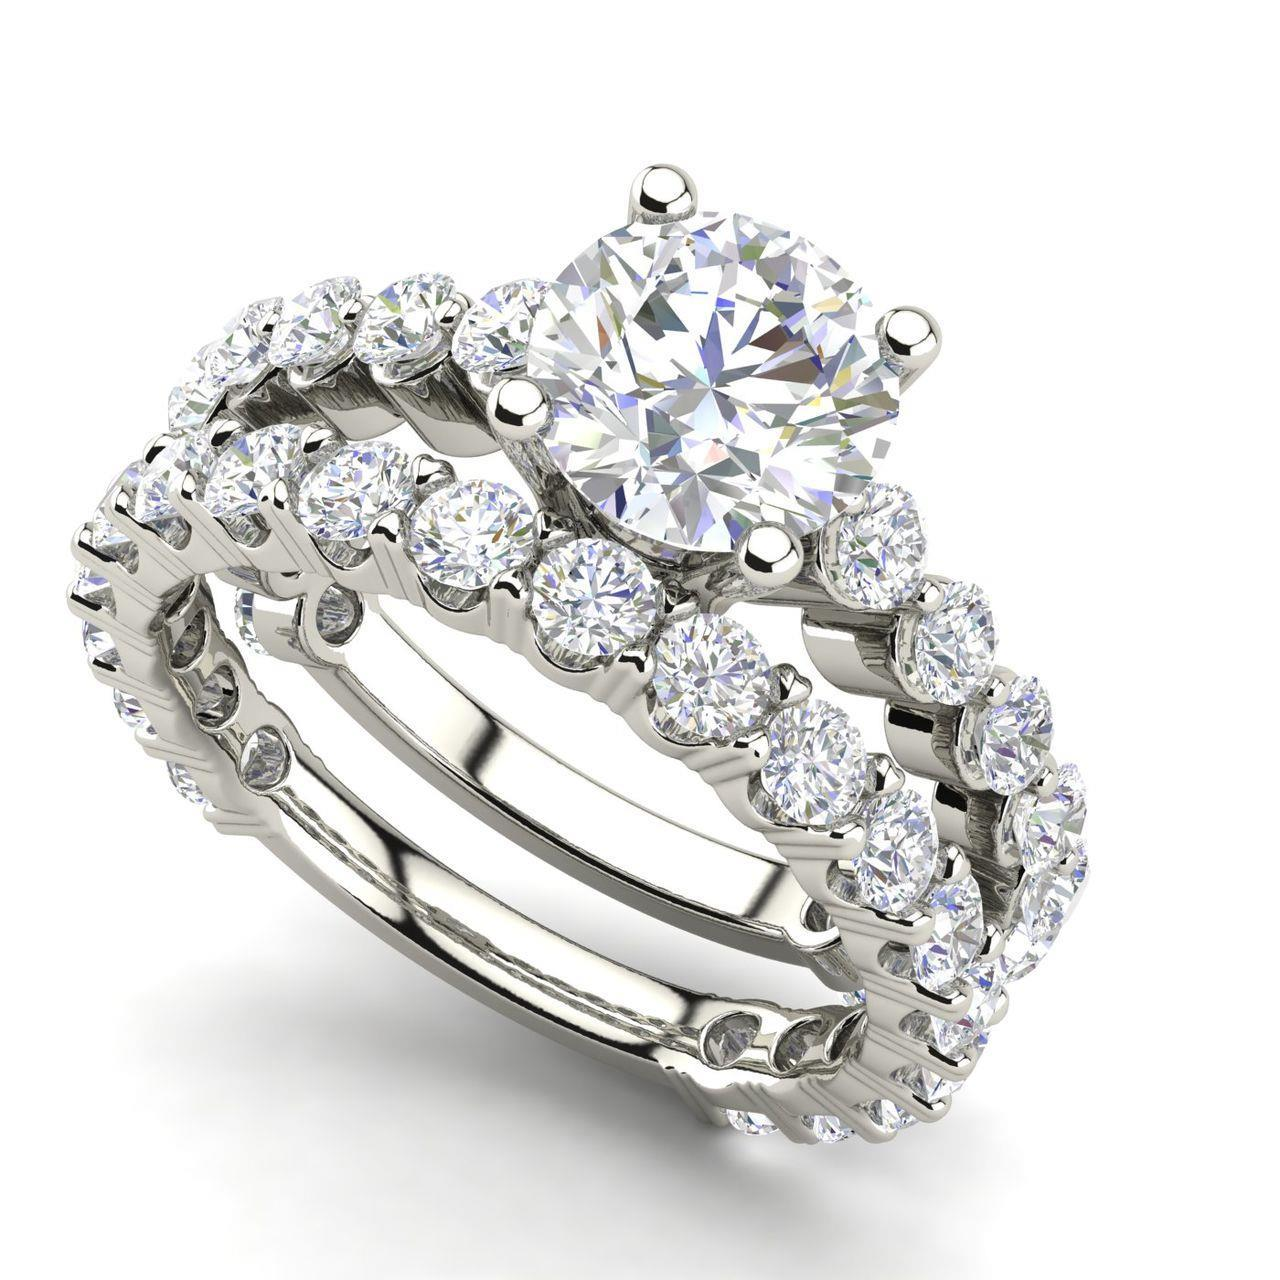 dimond rings platinum old upon ring european in a once engagement vintage diamond products